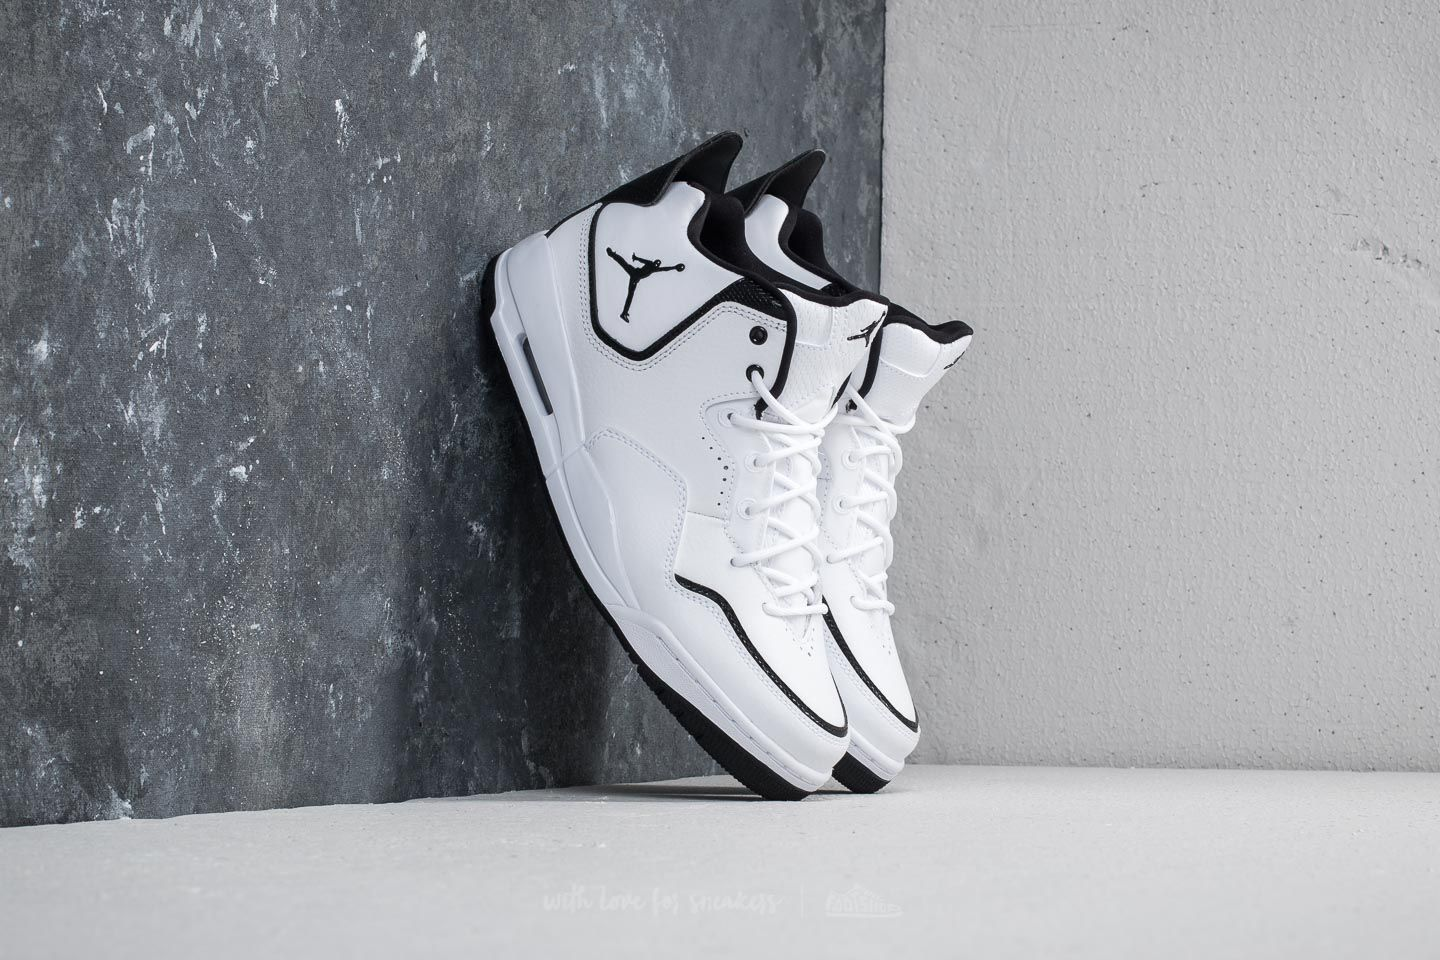 9ecf9336885 Jordan Courtside 23 White/ Black | Footshop